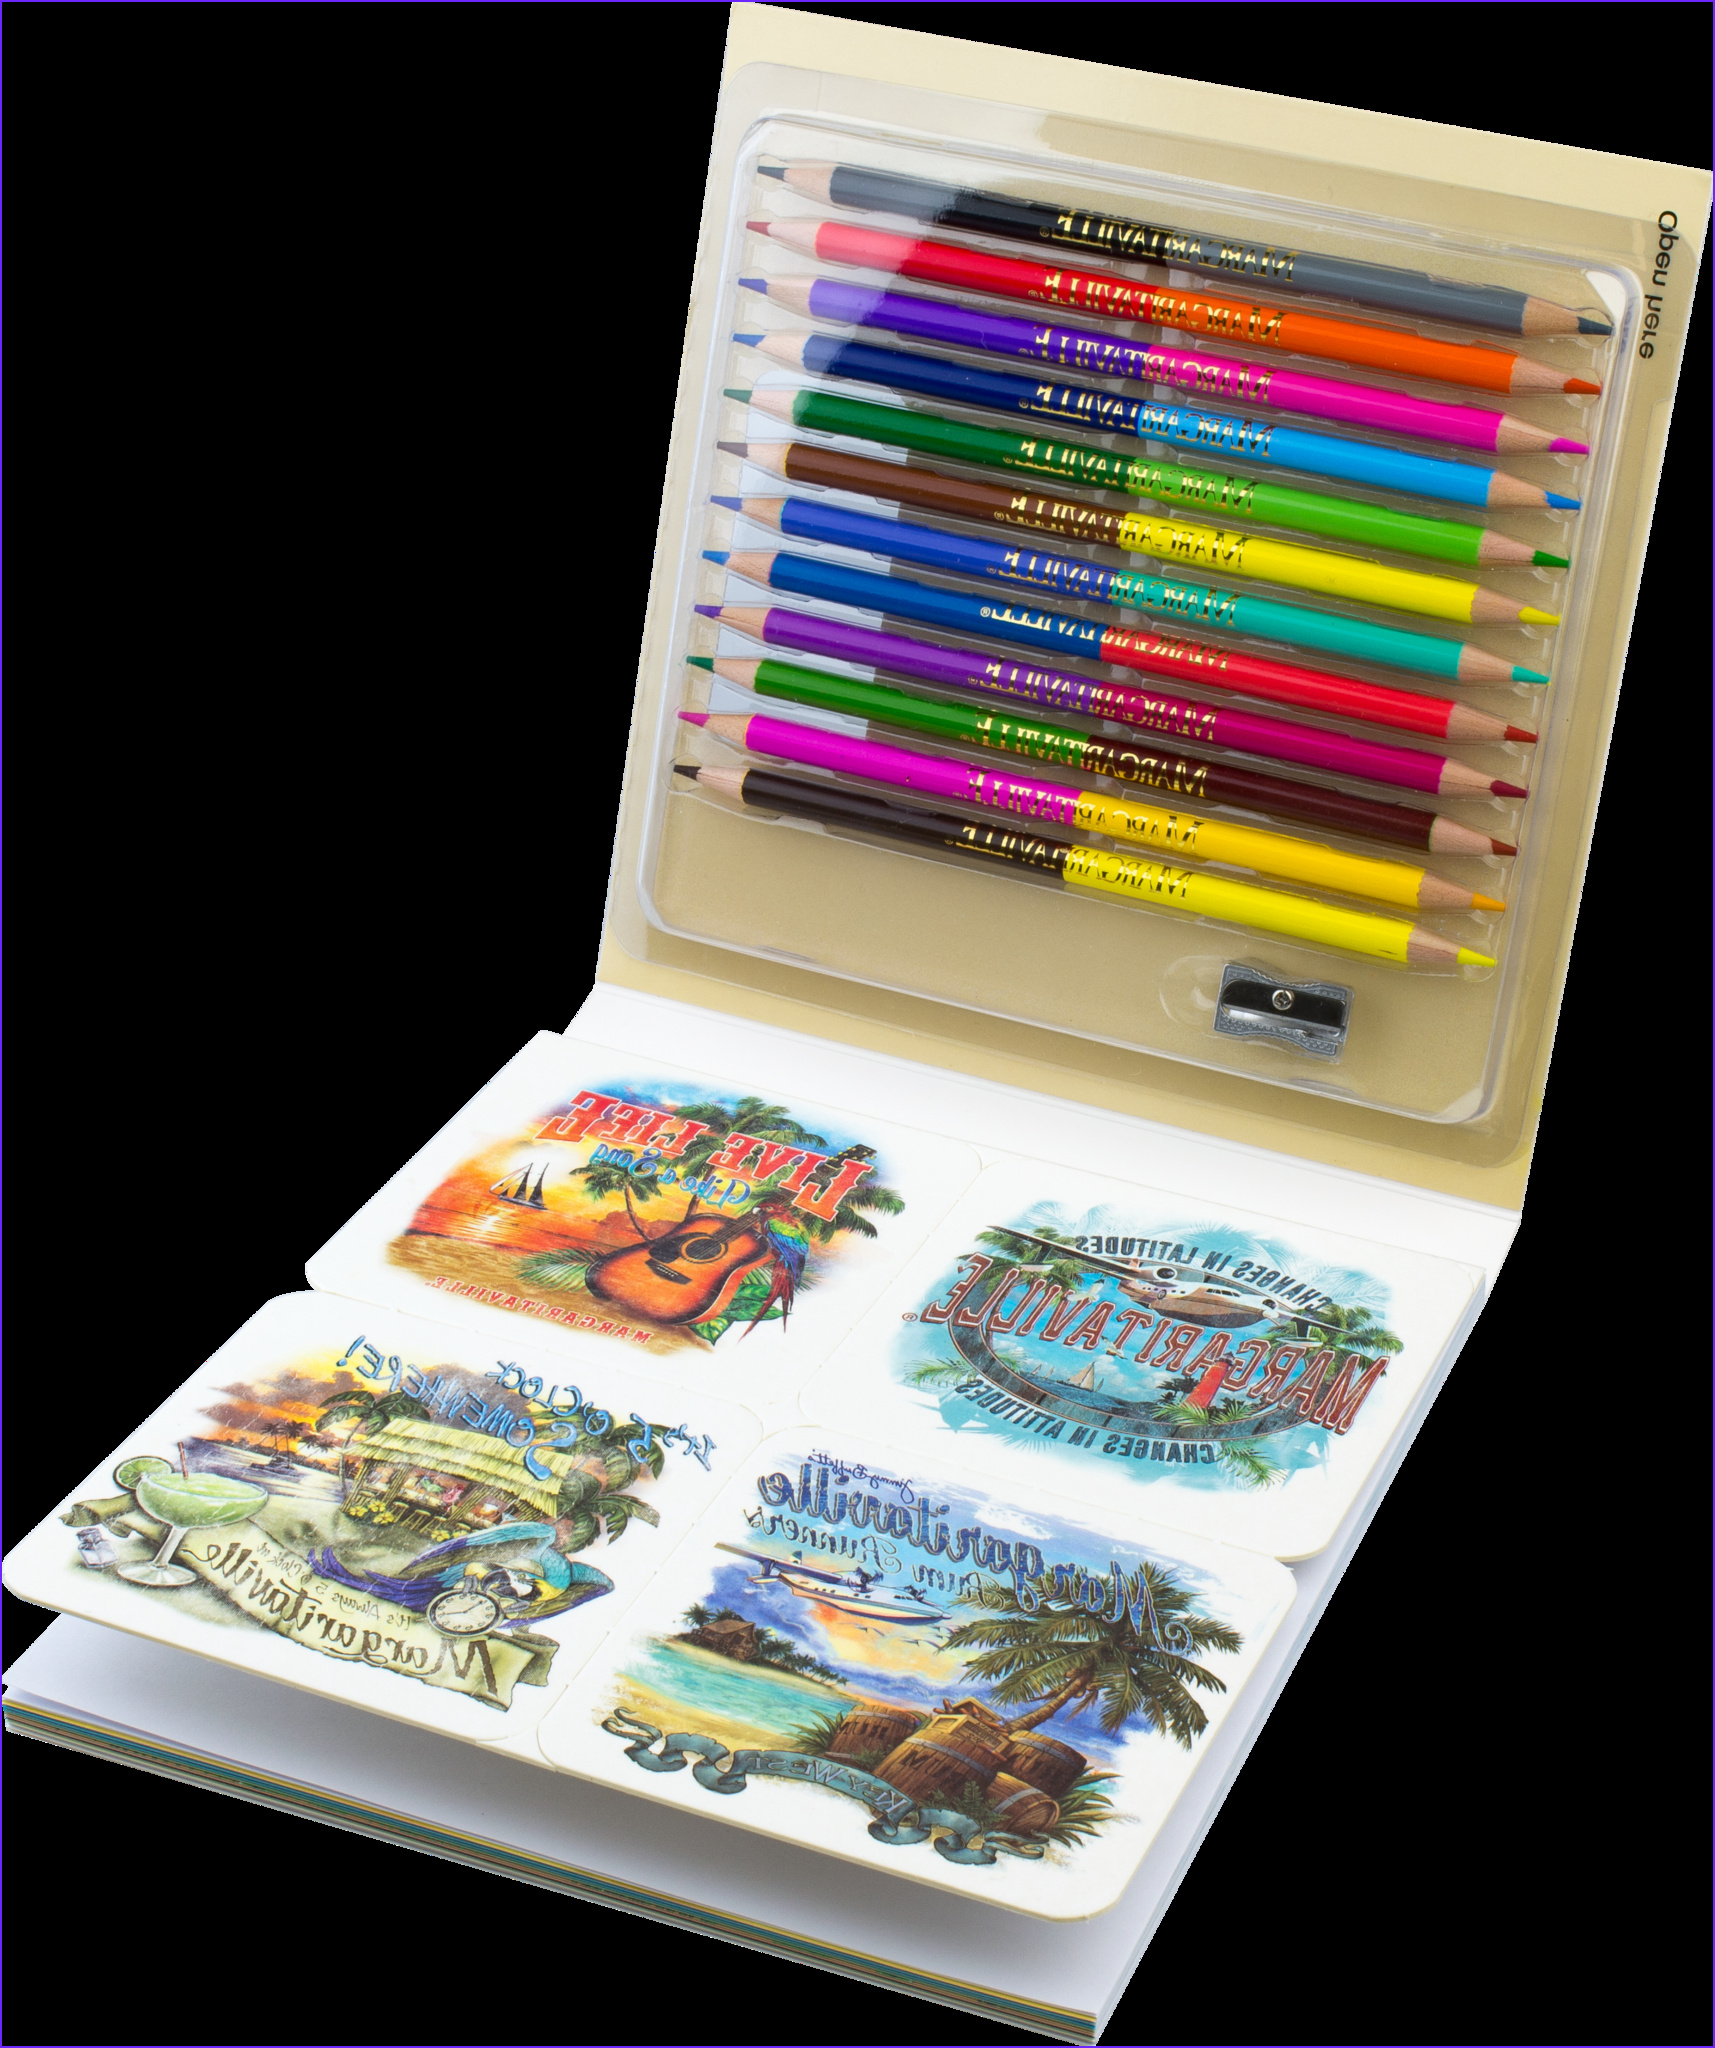 Adult Coloring Book Pencils Awesome Photos Margaritaville 5 O Clock somewhere Adult Coloring Book